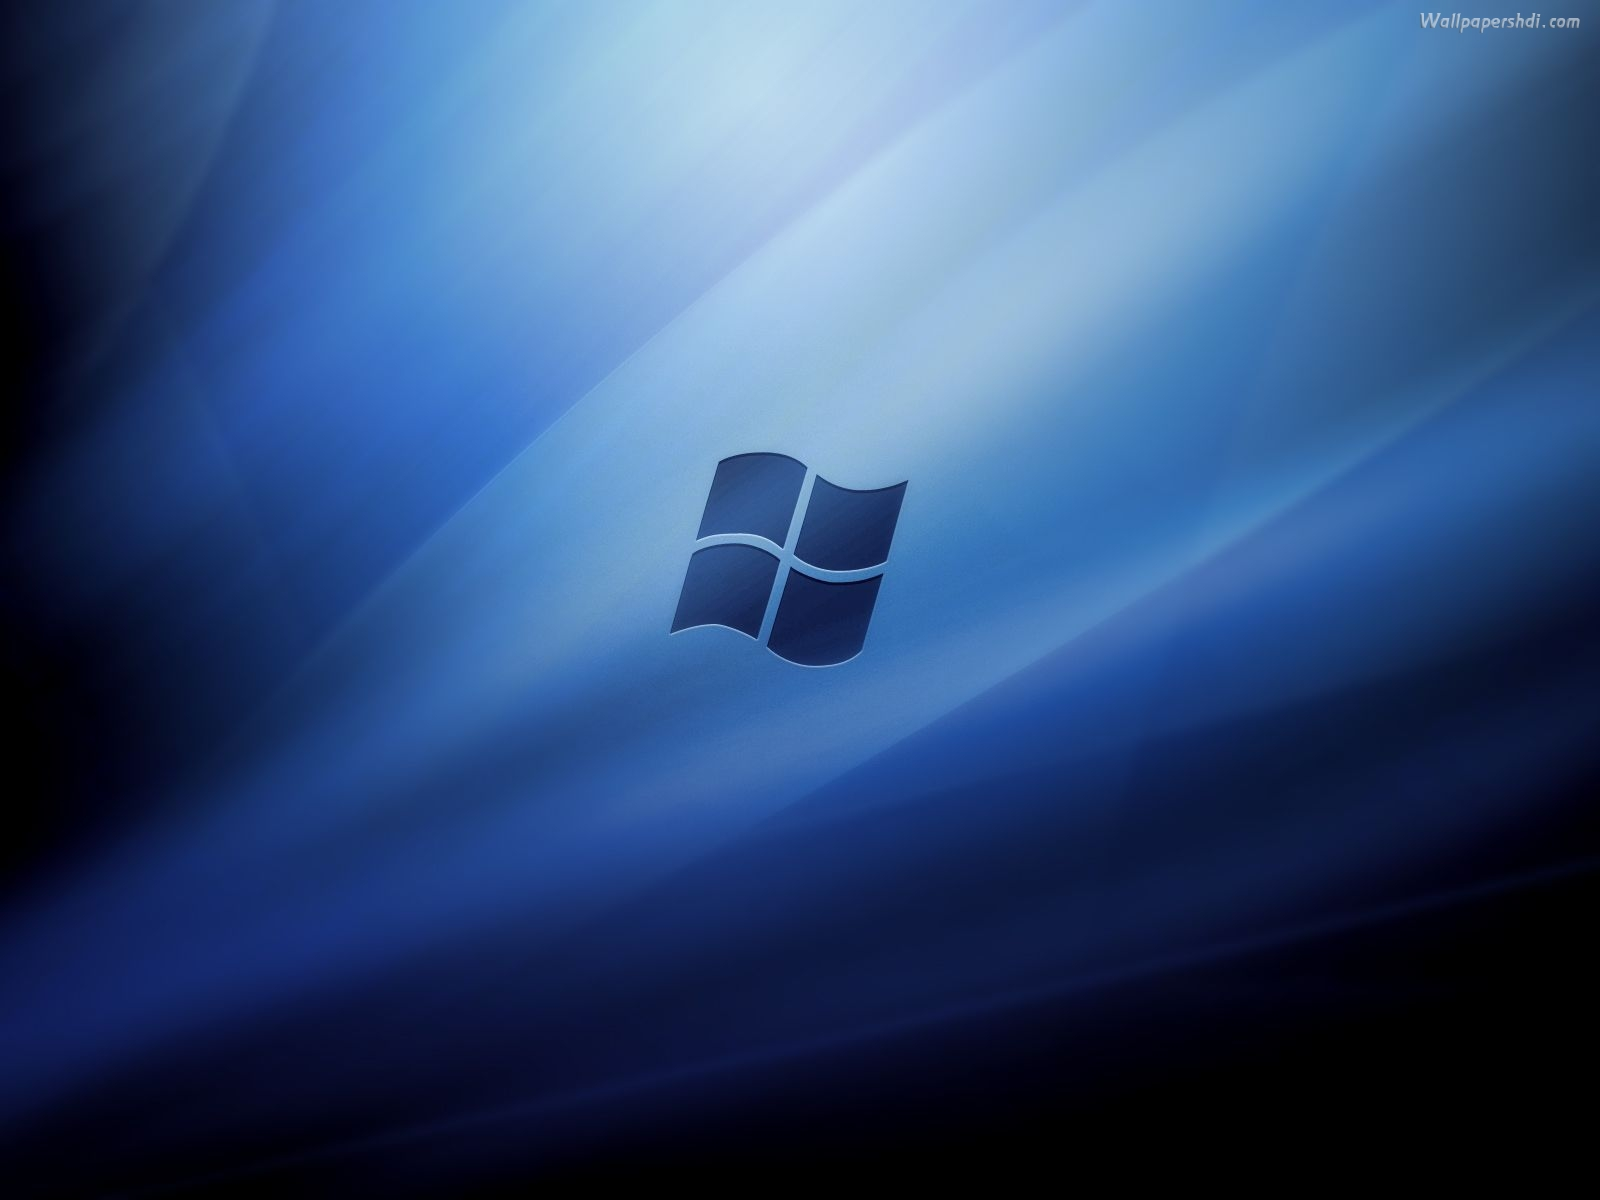 Microsoft Wallpapers Download HD Wallpapers 1600x1200